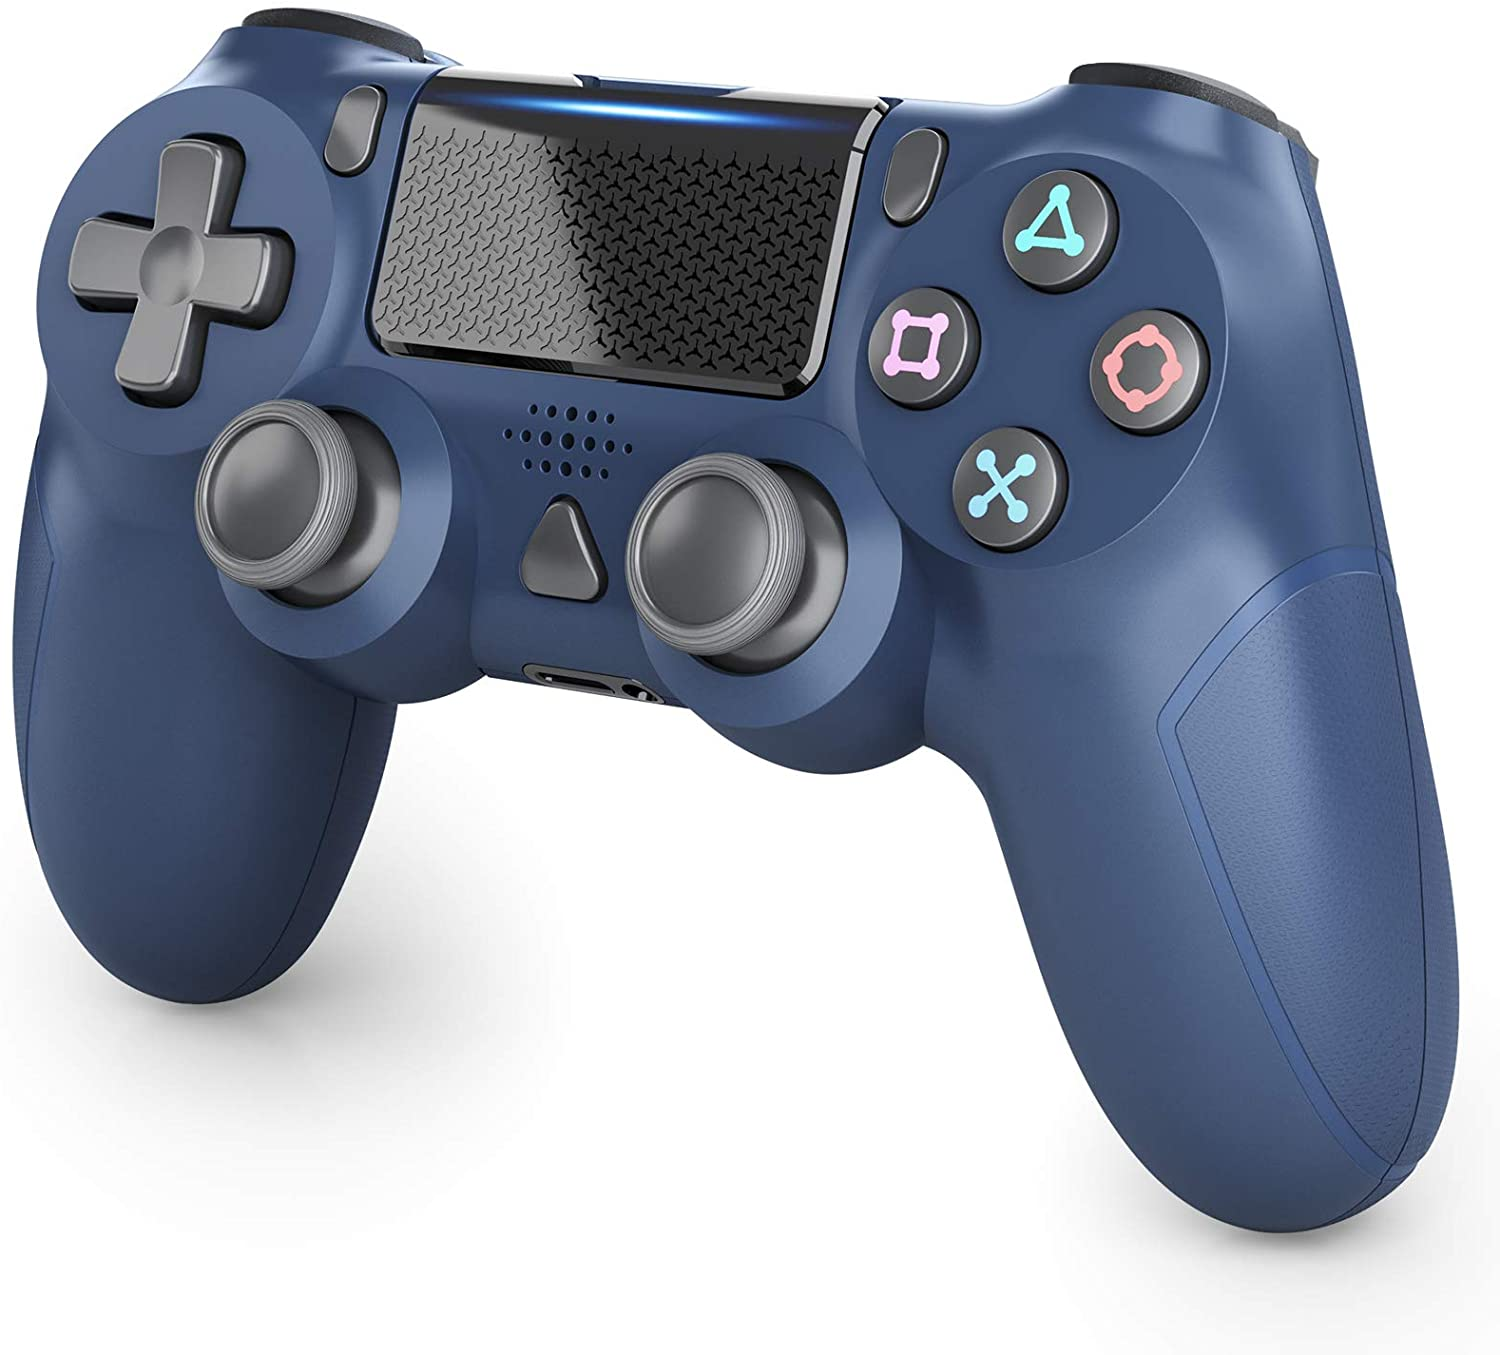 Wireless Controller for Playstation 4, Gamepad Controller Remote Joystick for PS4/Pro/Slim Console with Motion Motors, Audio Function, Touch Pad and Dual Vibration (Blue)